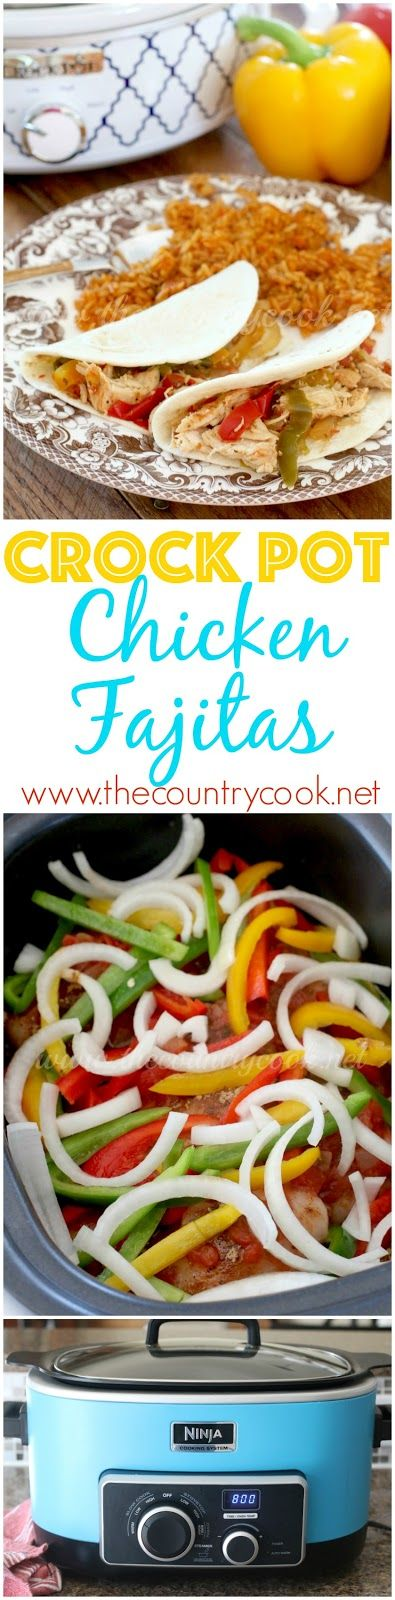 The Country Cook: Crock Pot Chicken Fajitas